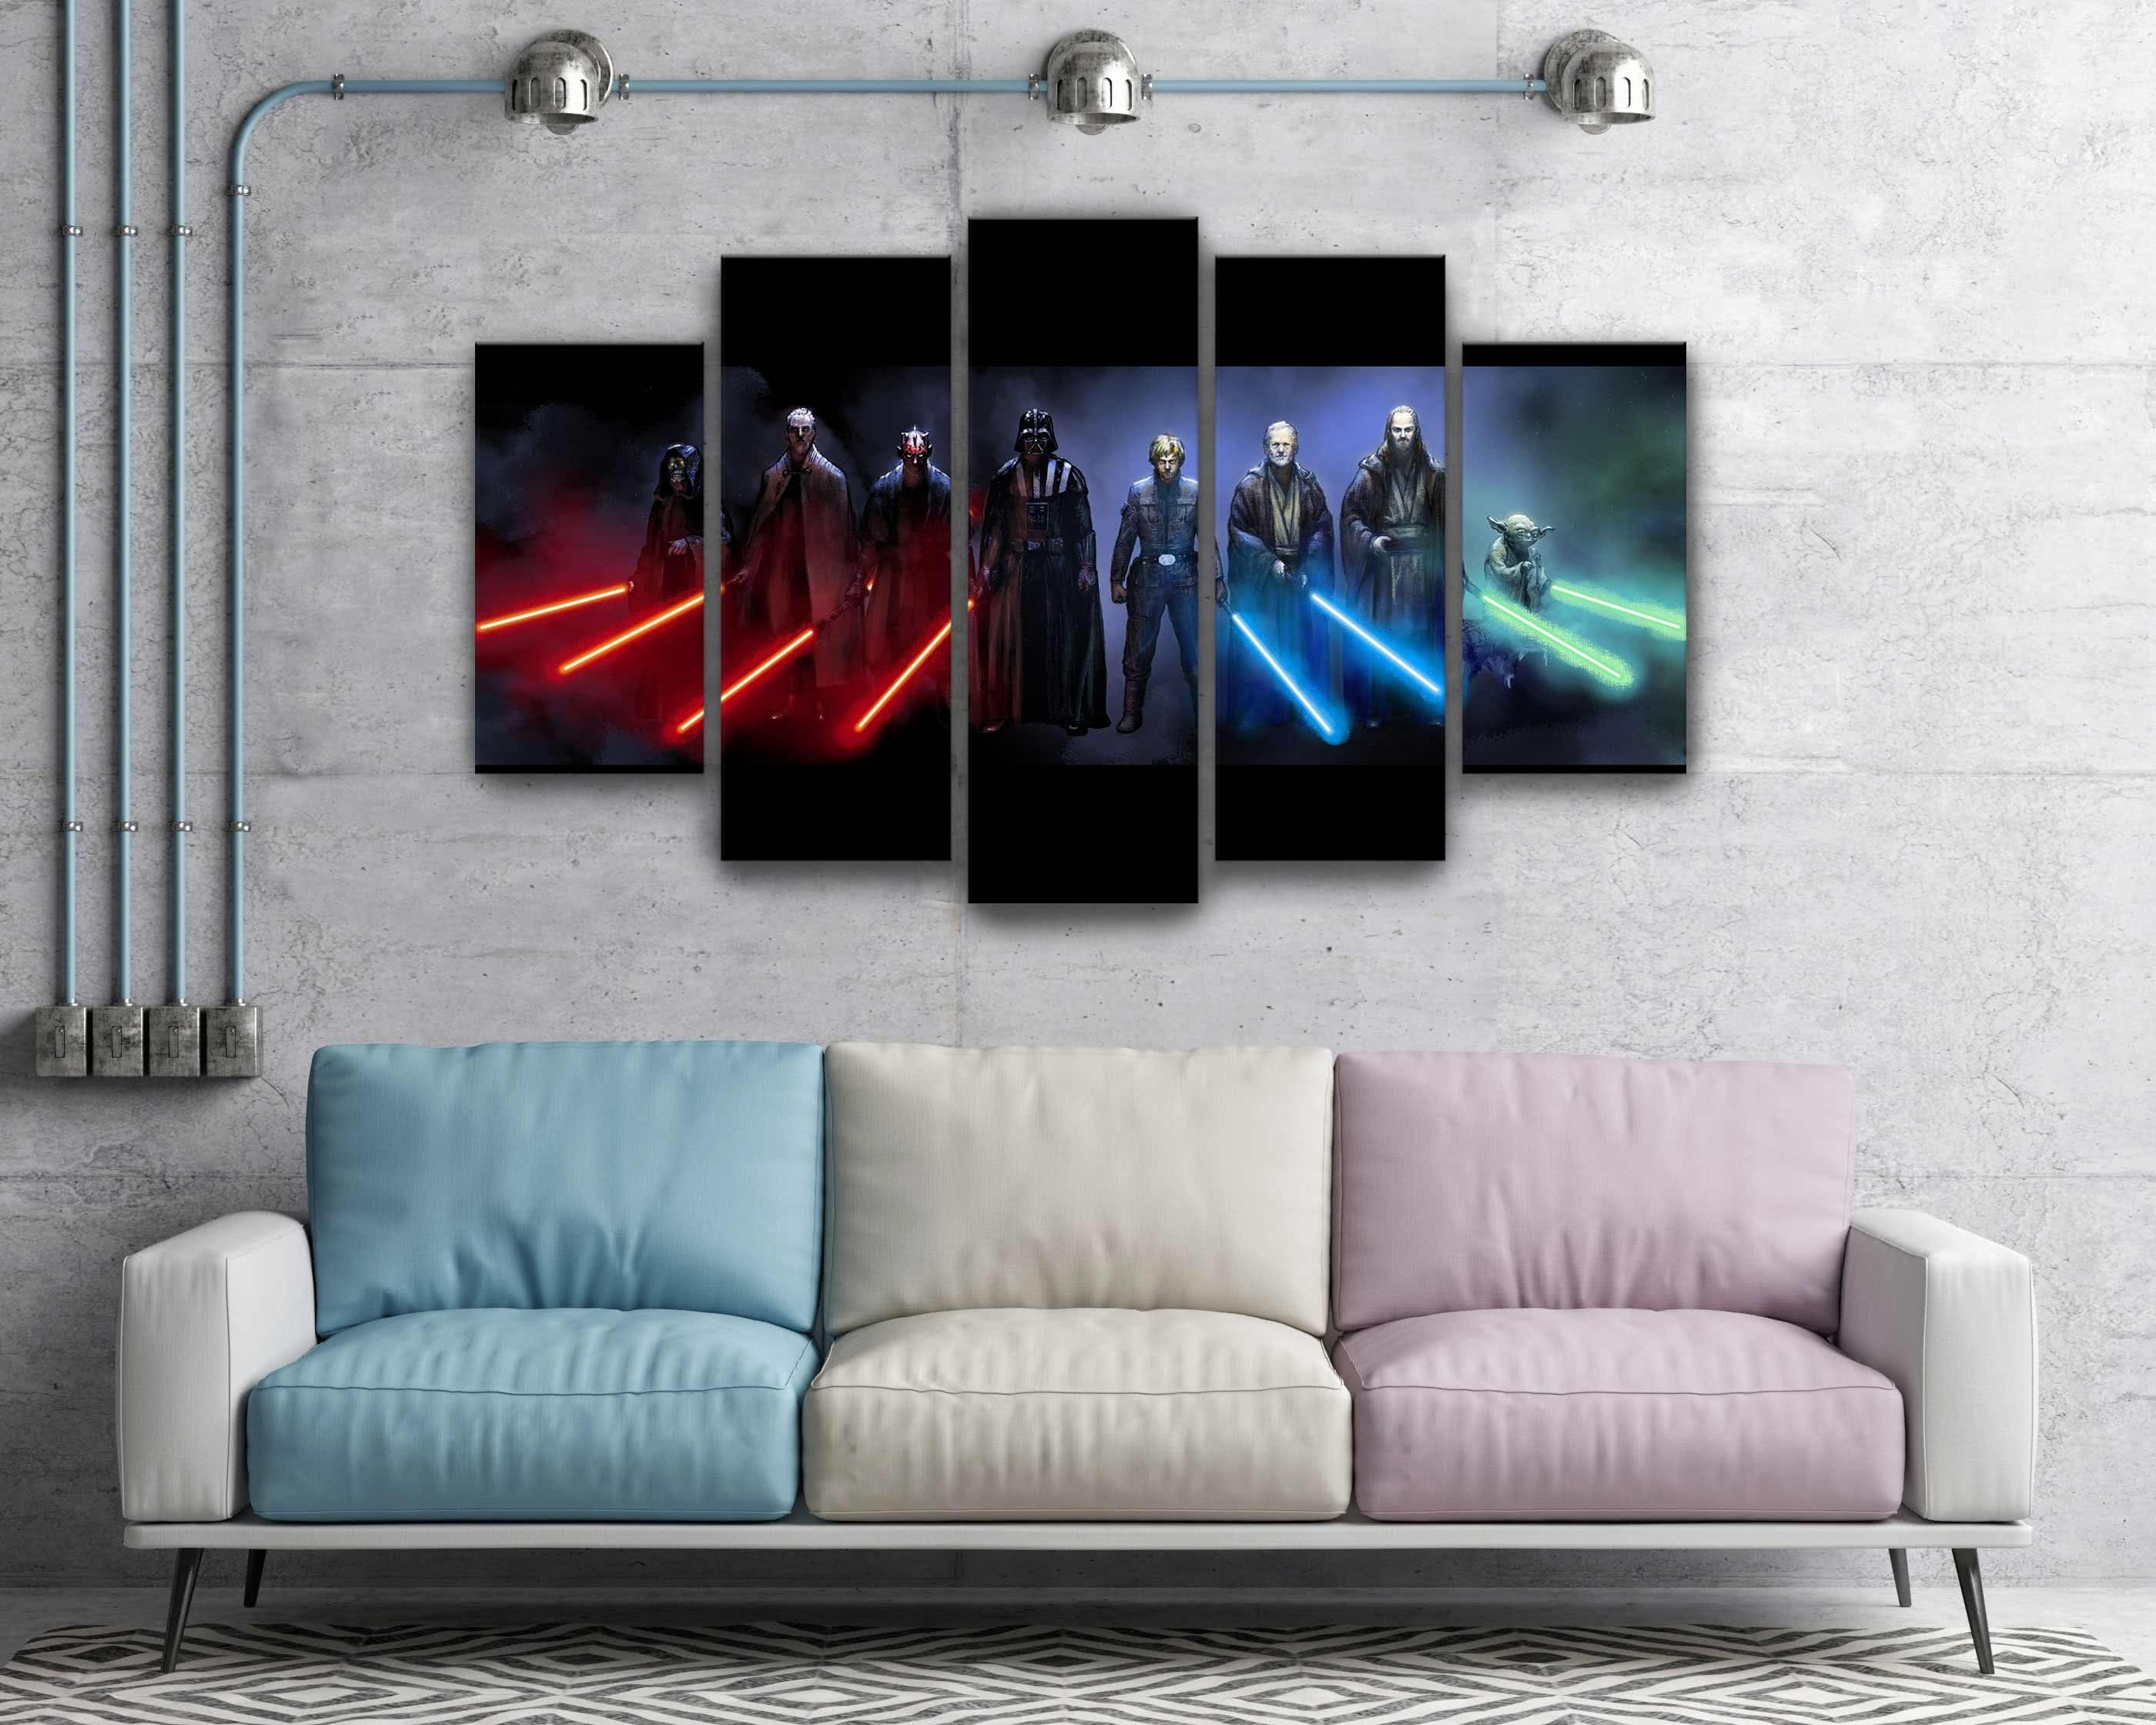 Star Wars Darth Vader Luke Skywalker Jedi And Sith Lightsaber Canvas Regarding 2017 Star Wars Wall Art (View 11 of 15)